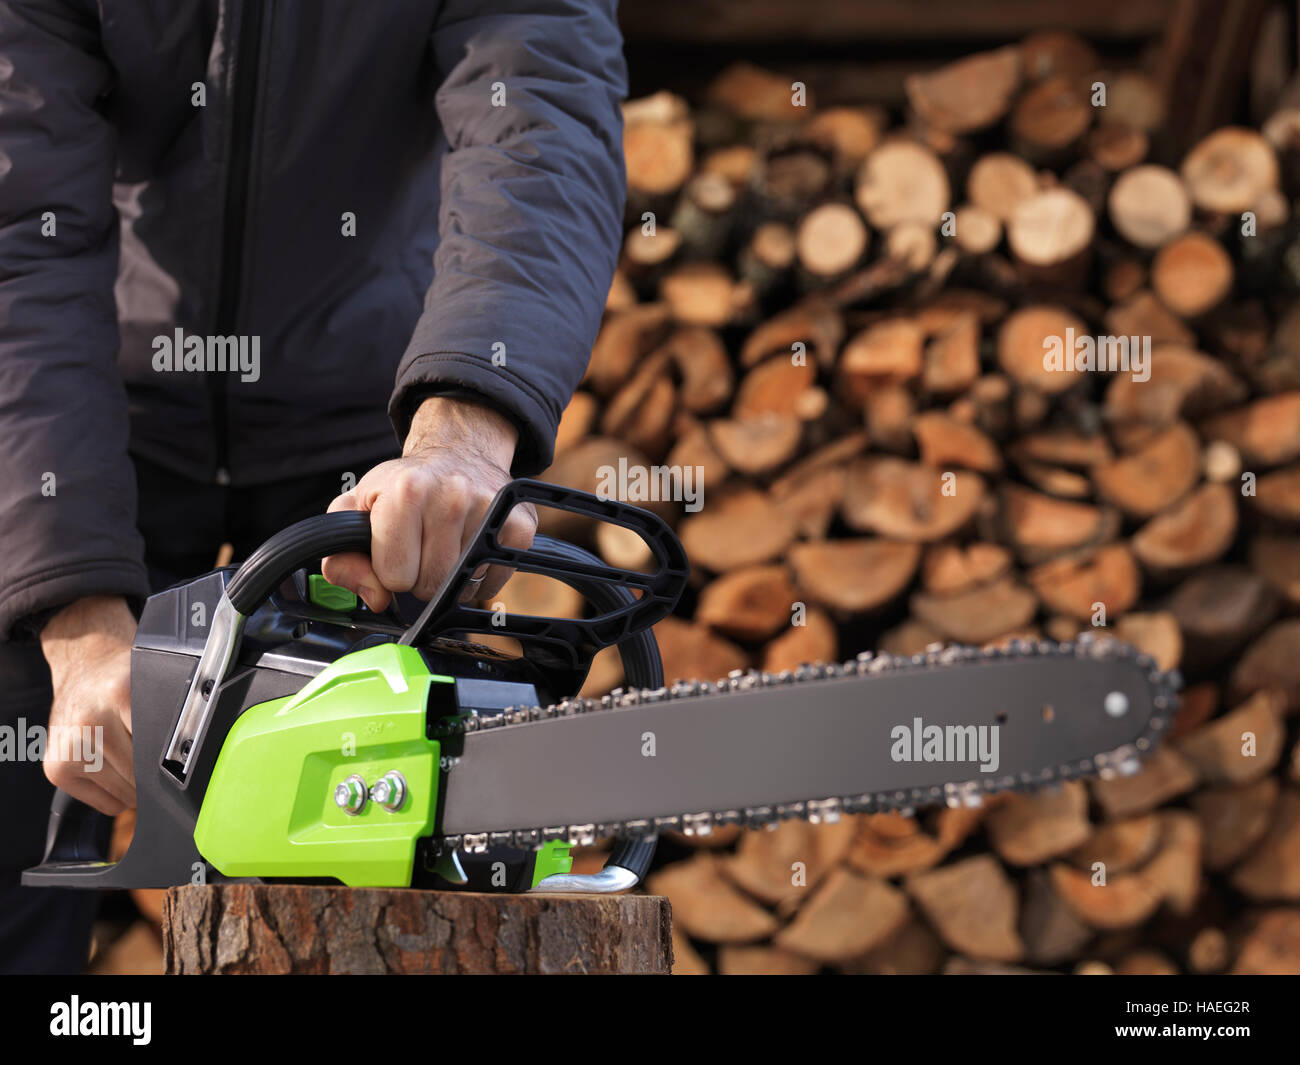 CLoseup of hands of a man holding an Electric Cordless chainsaw in front of stacked firewood in the background Stock Photo